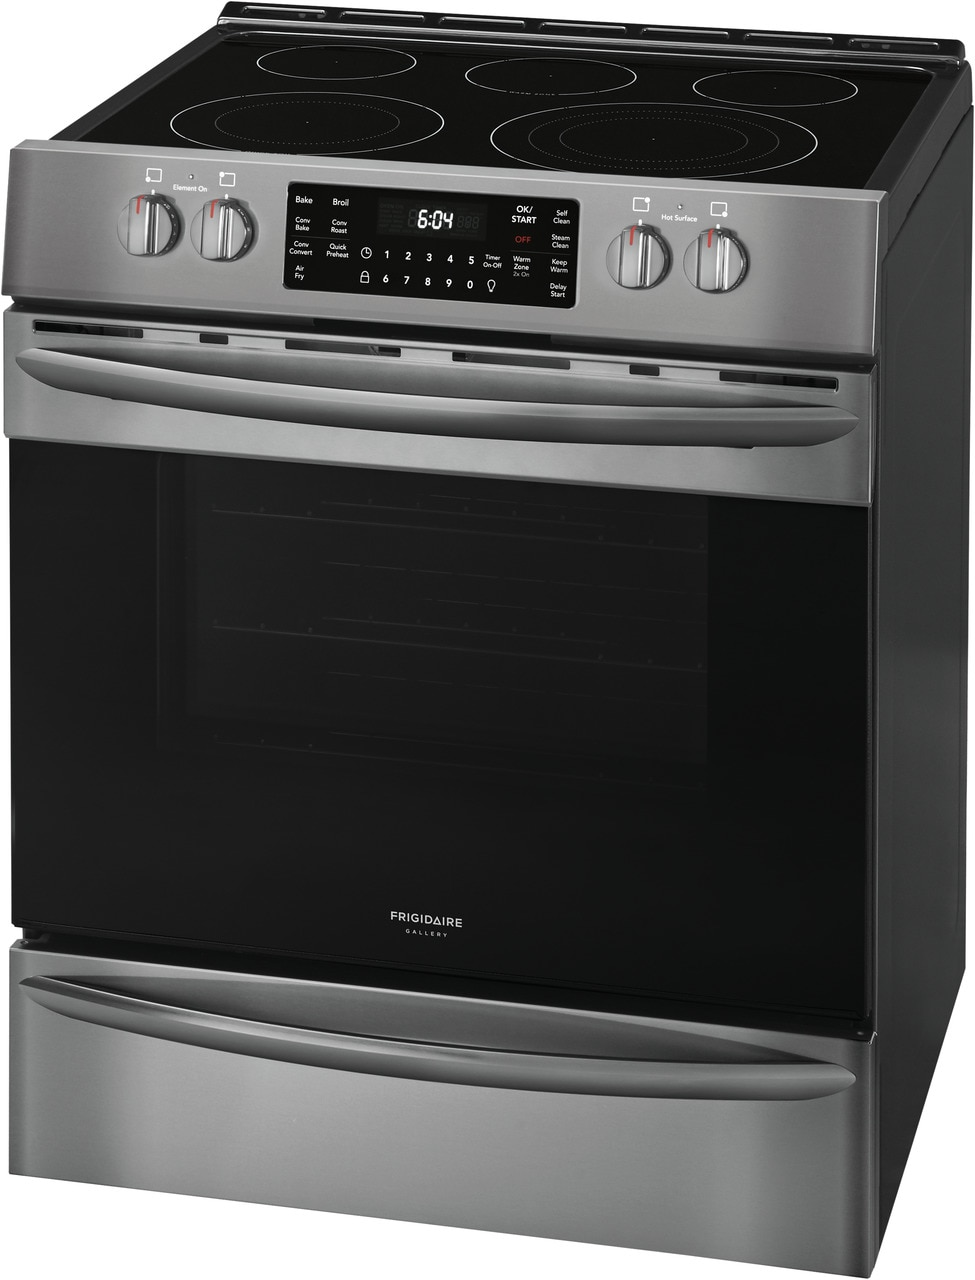 "Model: FGEH3047VD | Frigidaire Gallery 30"" Front Control Electric Range with Air Fry"